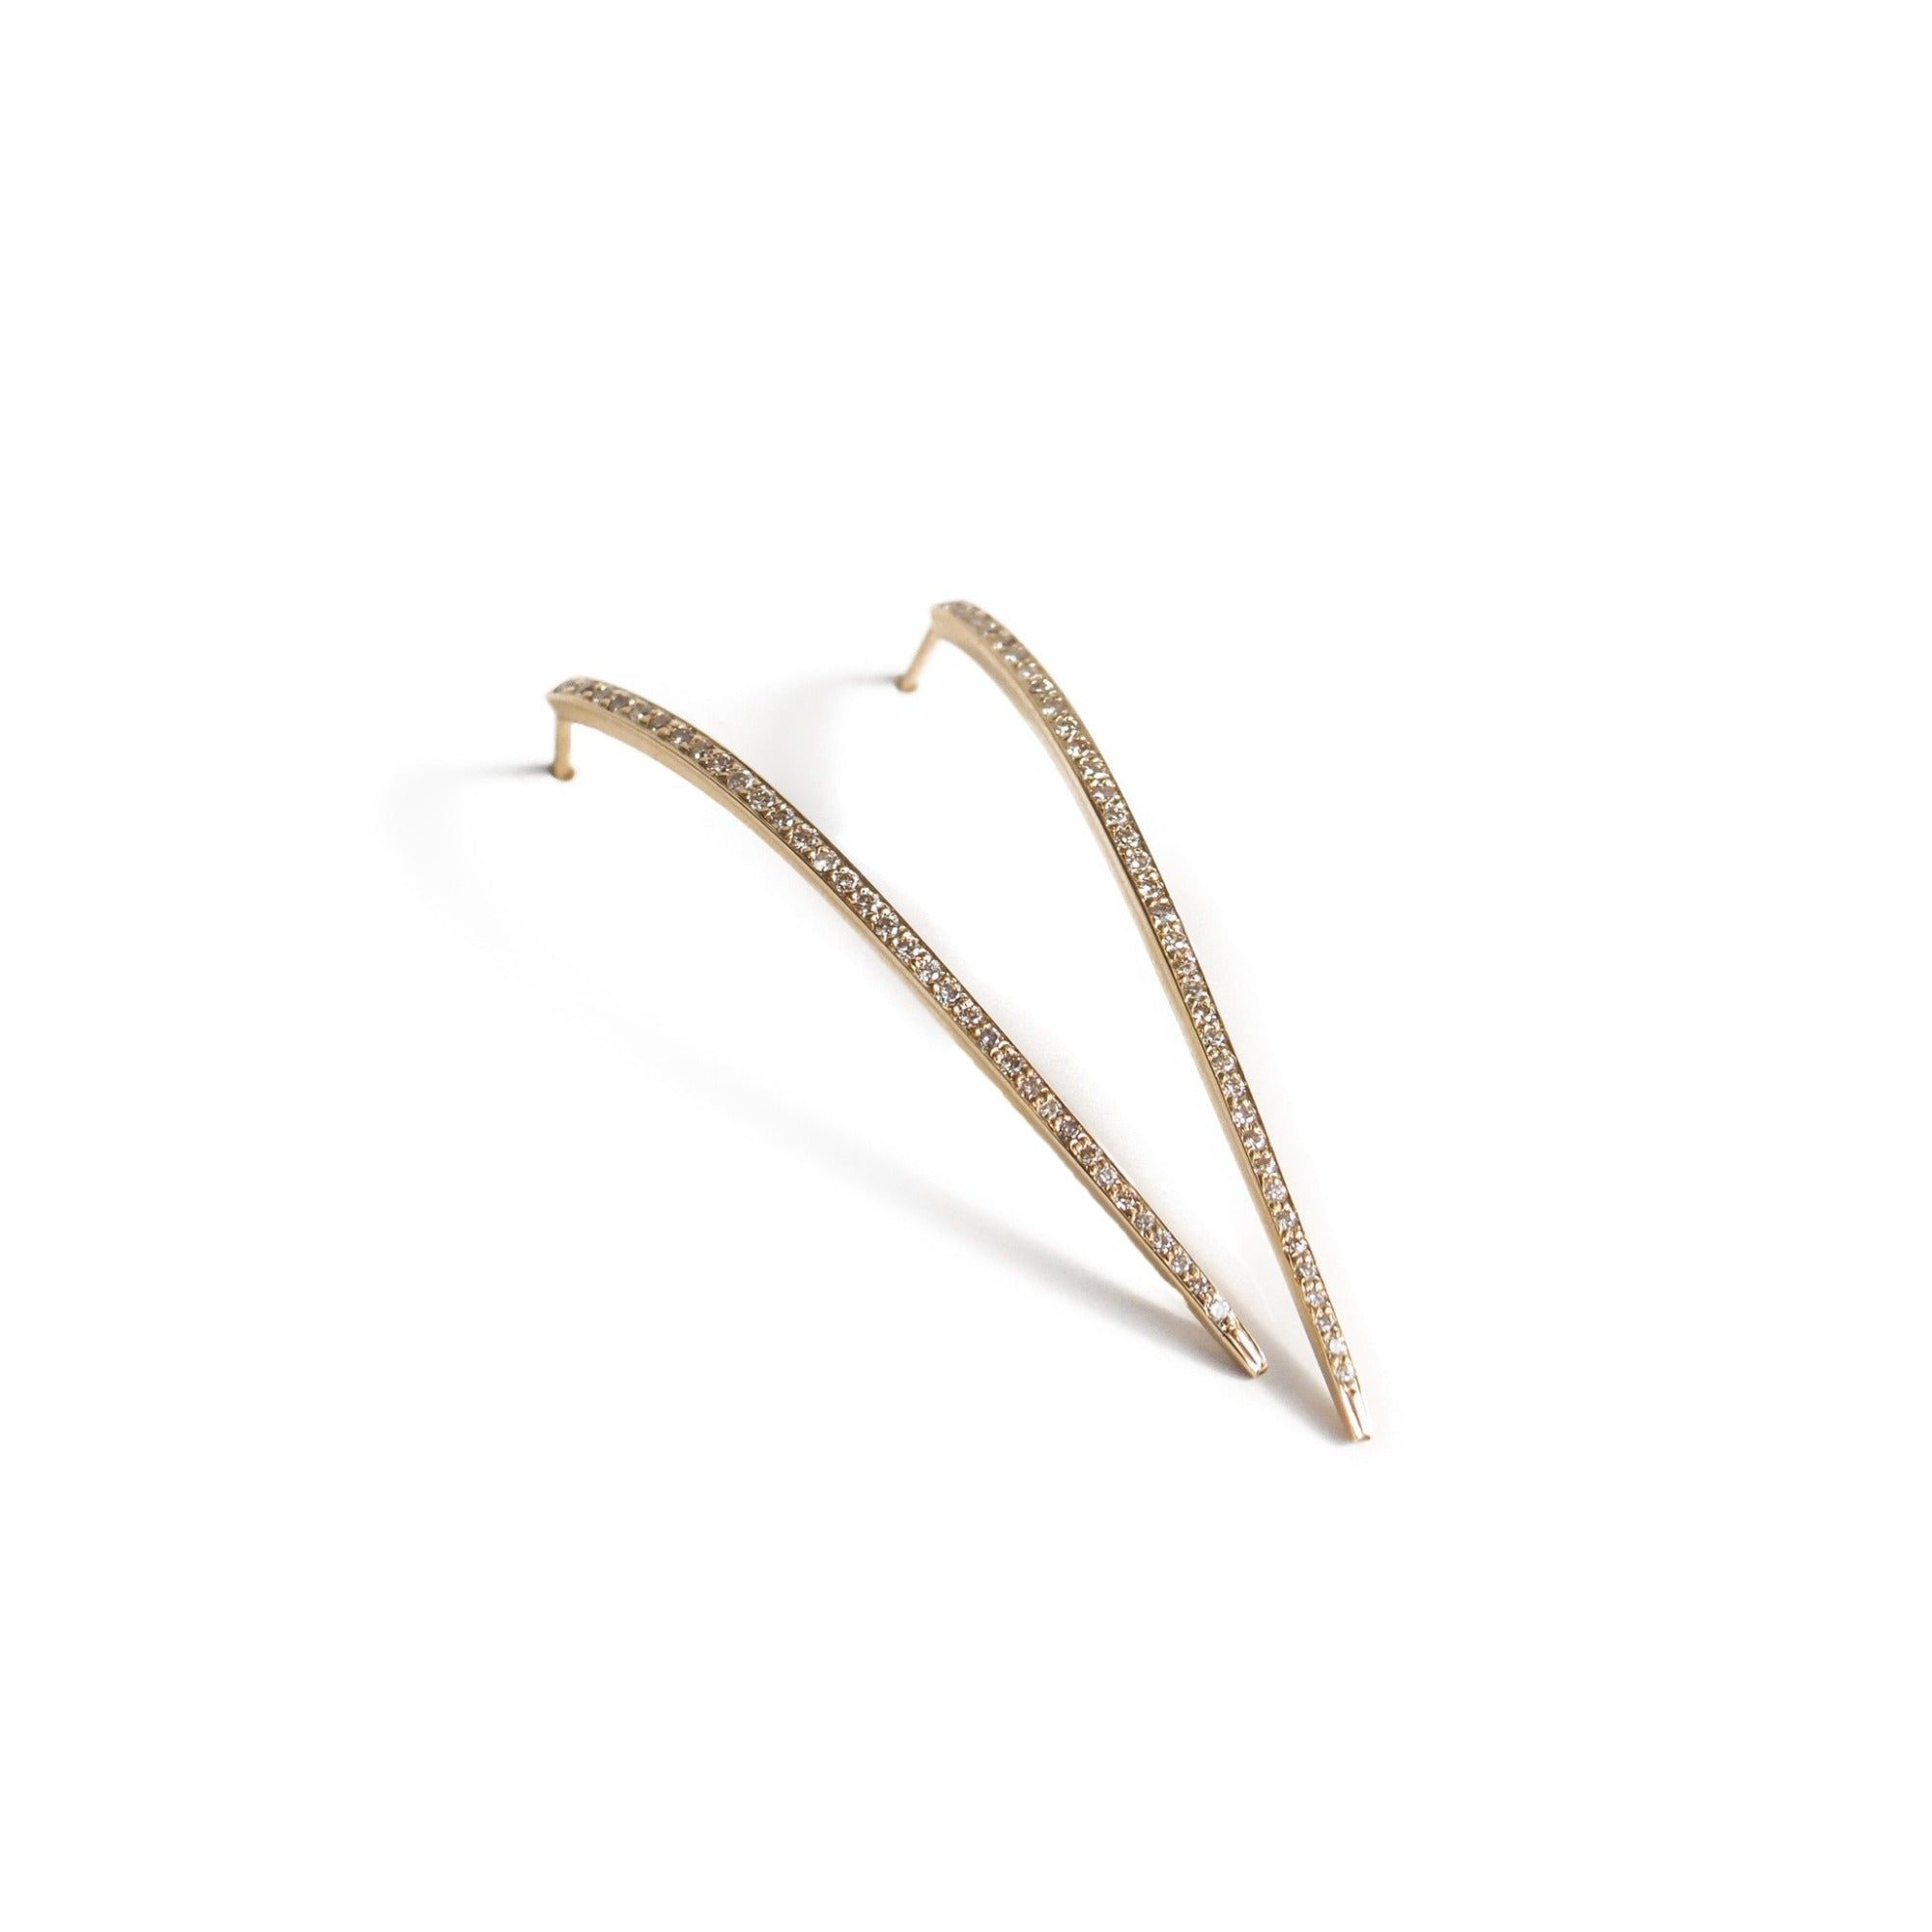 14k yellow gold with brown pave diamonds curved stake studs